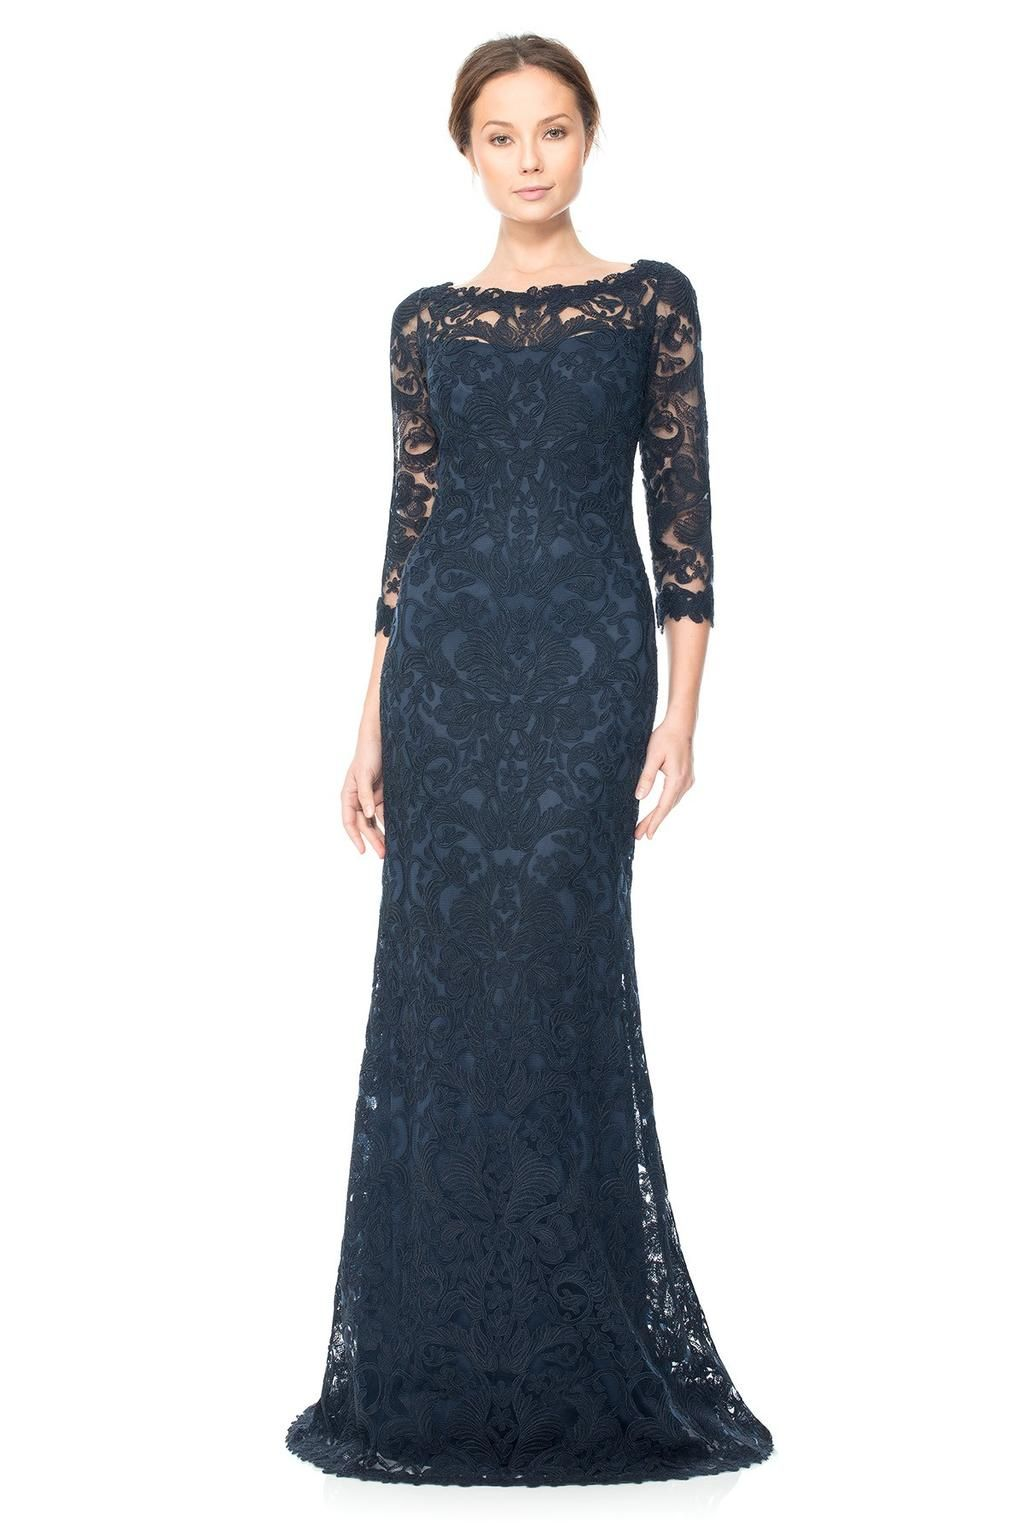 672ea301540b Tadashi Shoji Corded Embroidery on Tulle ¾ Sleeve Gown , Size: 14 | Mother  of the Bride Dresses